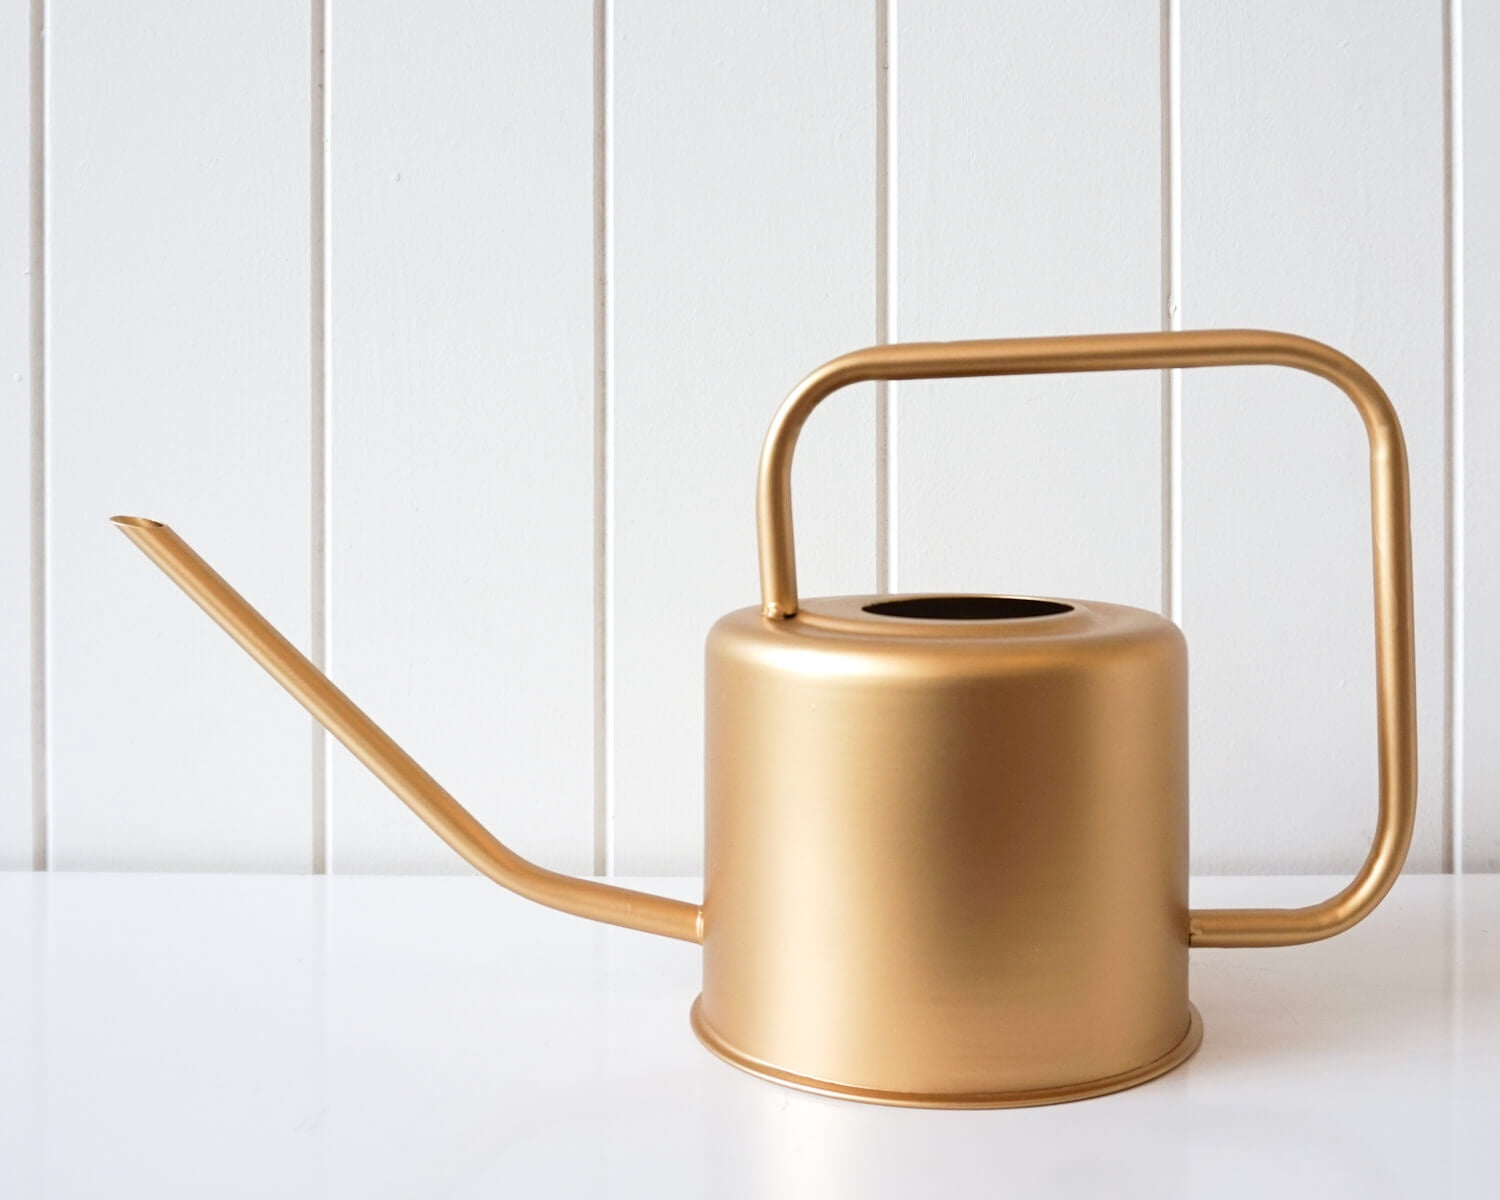 Watering Can - Abstract Gold - 35x13x19cm